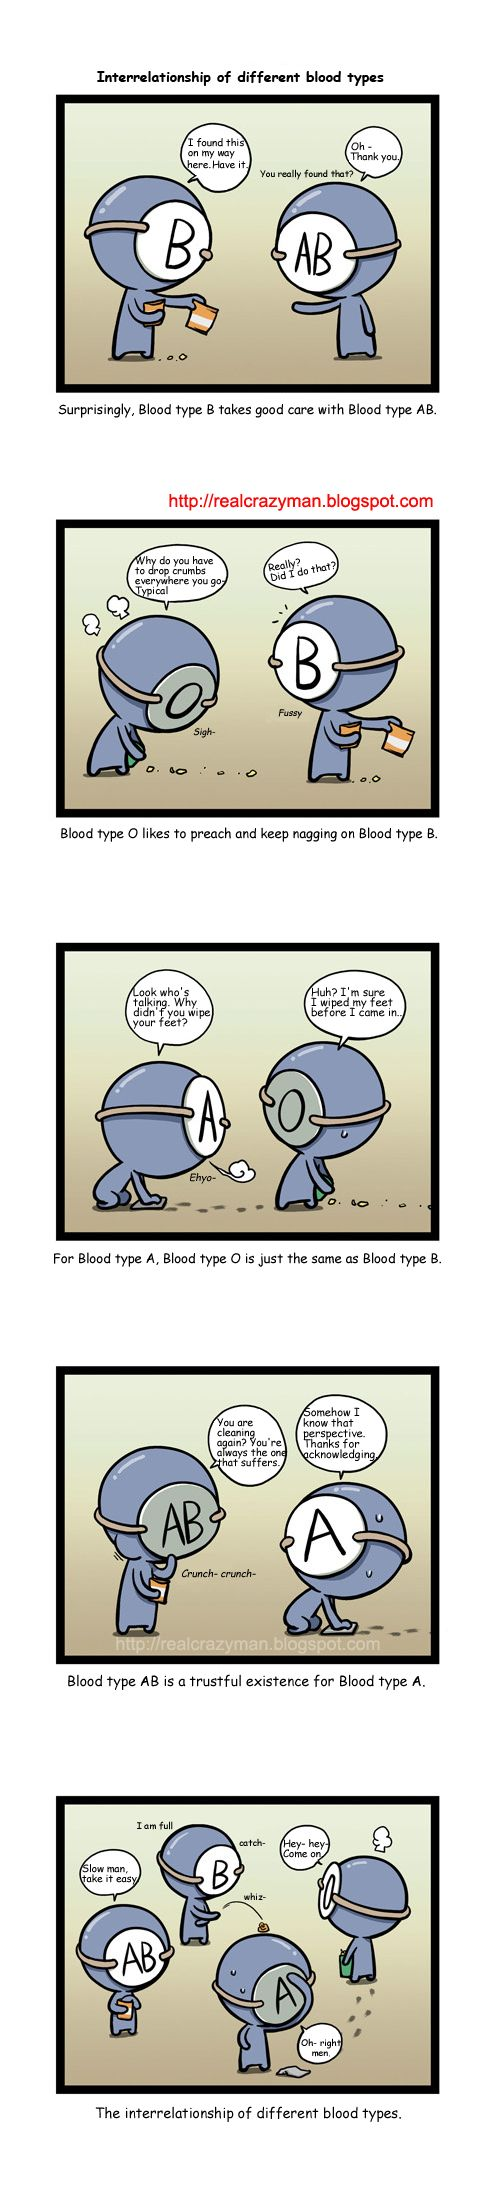 Collected comics about personalities attributing to blood types - so damn entertaining & thoughtful